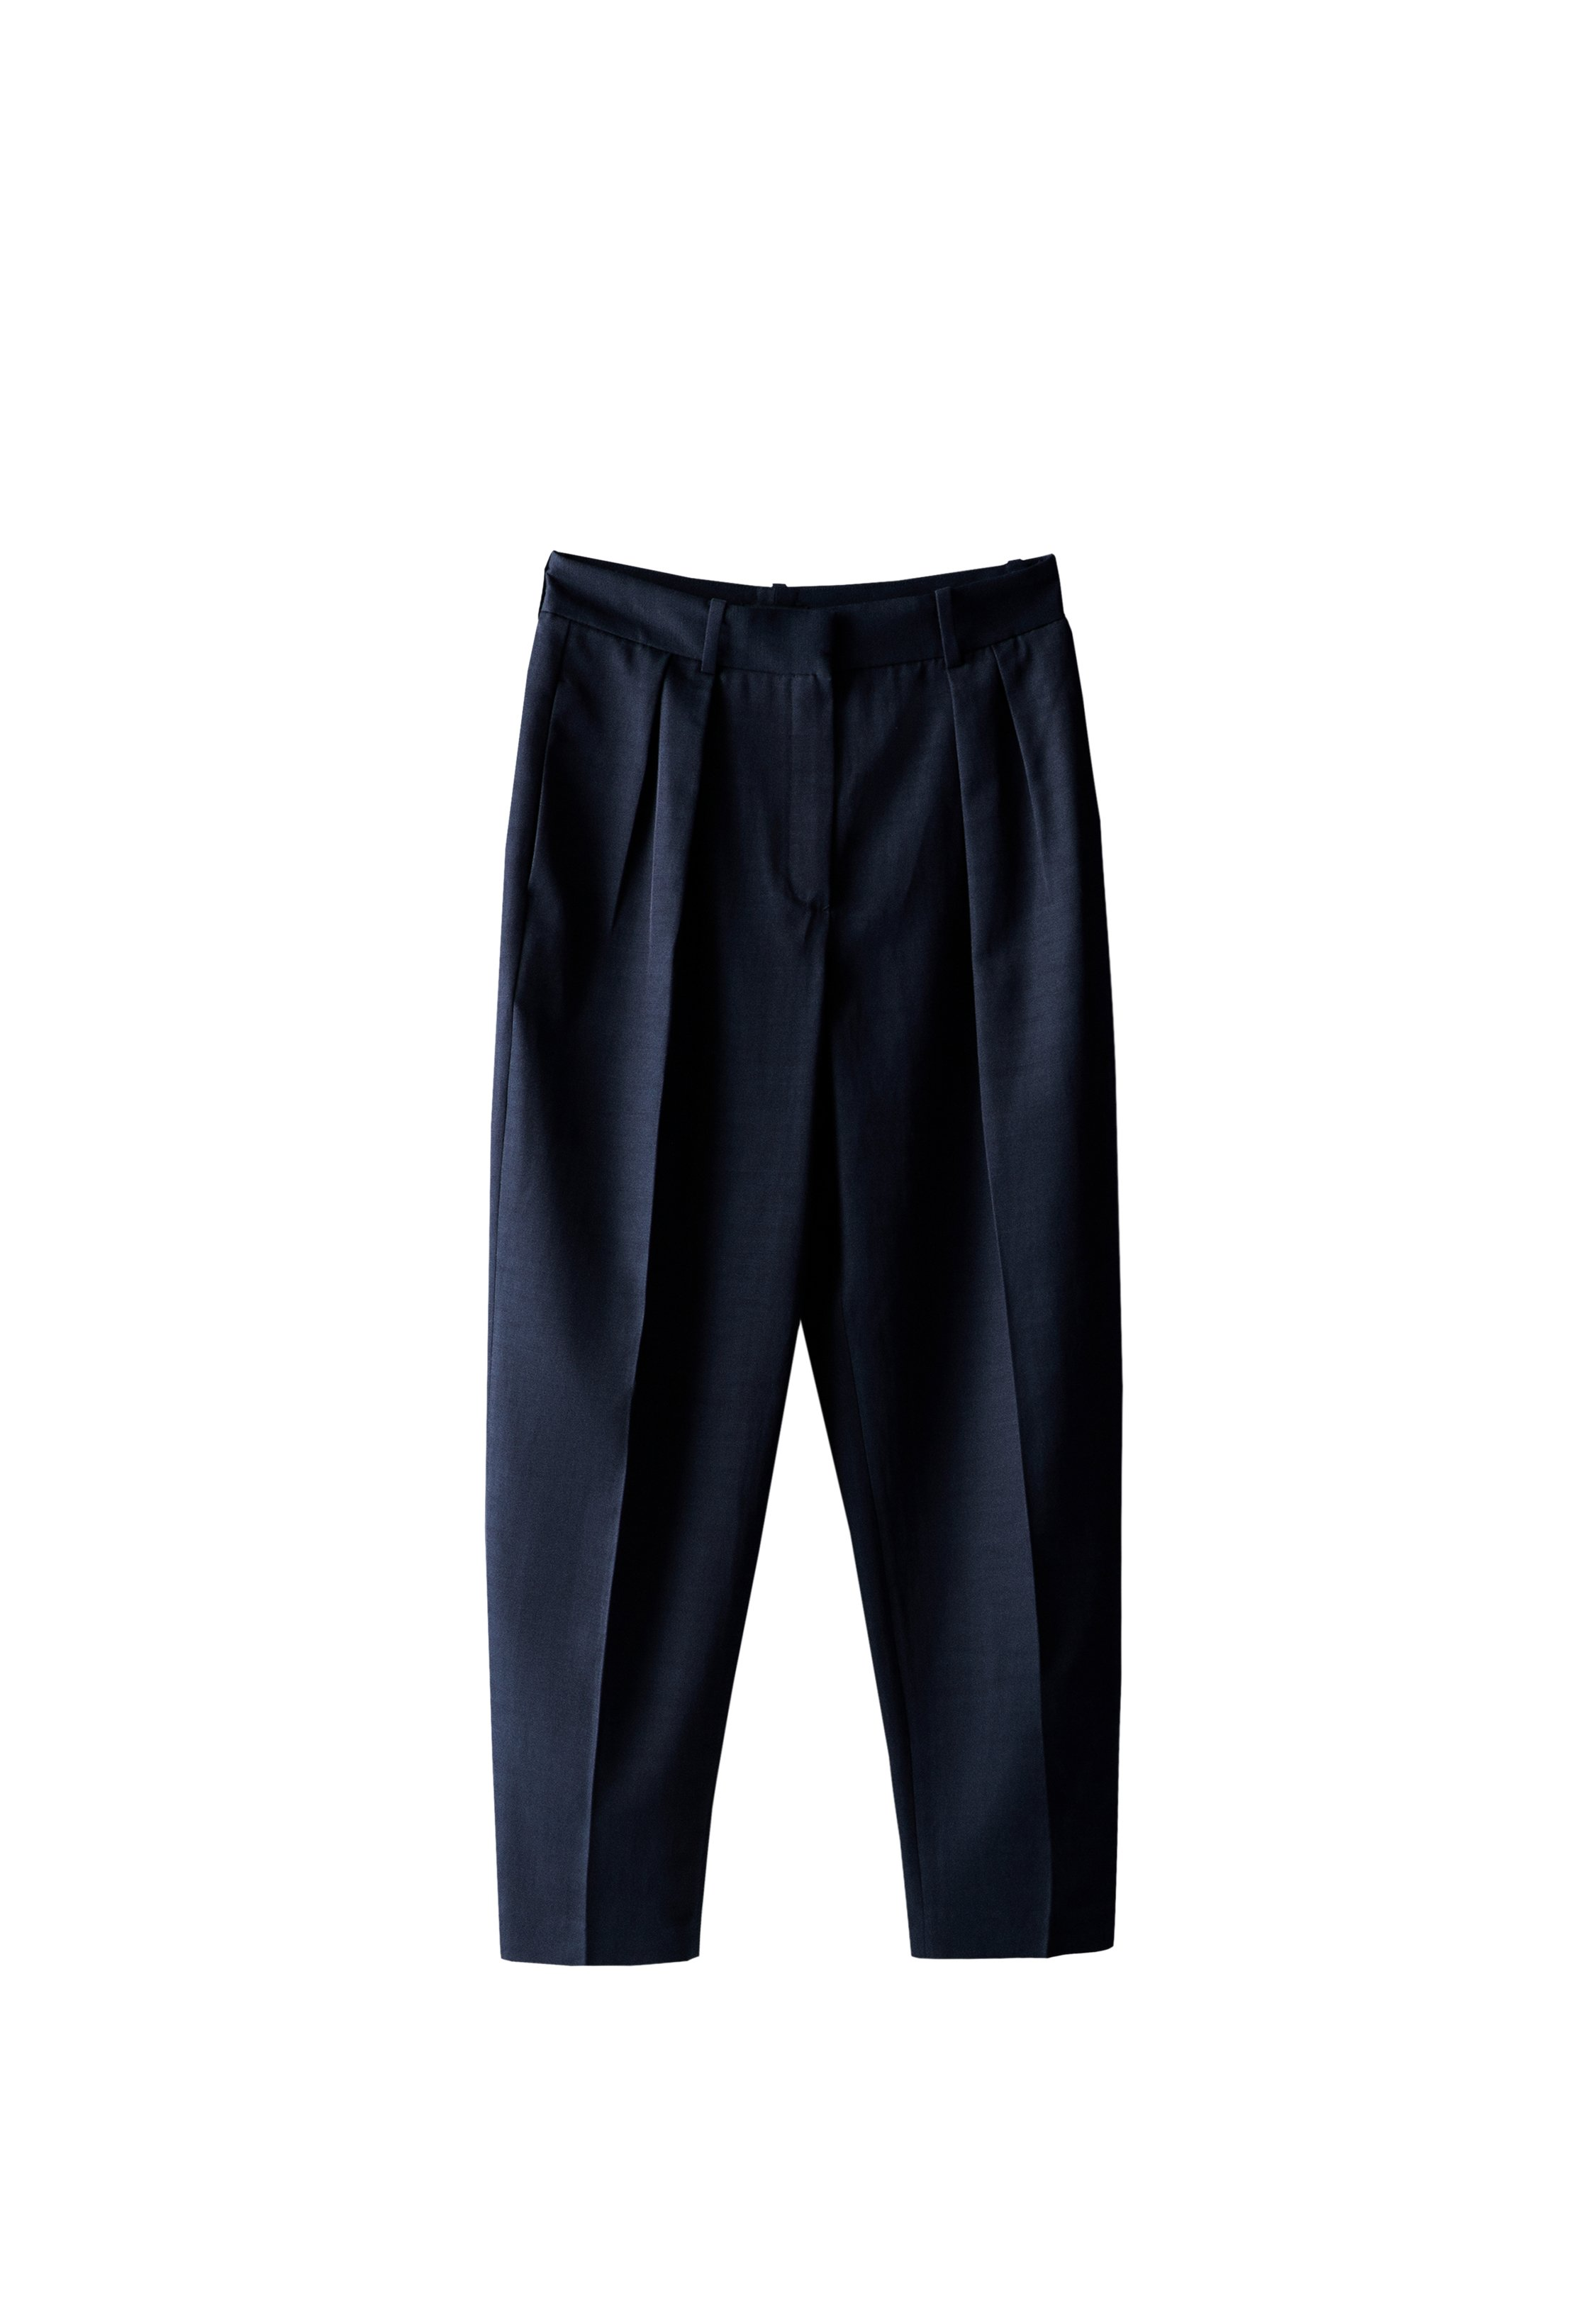 Massimo Dutti Relaxed Fit Jeans - Blue-black Denim